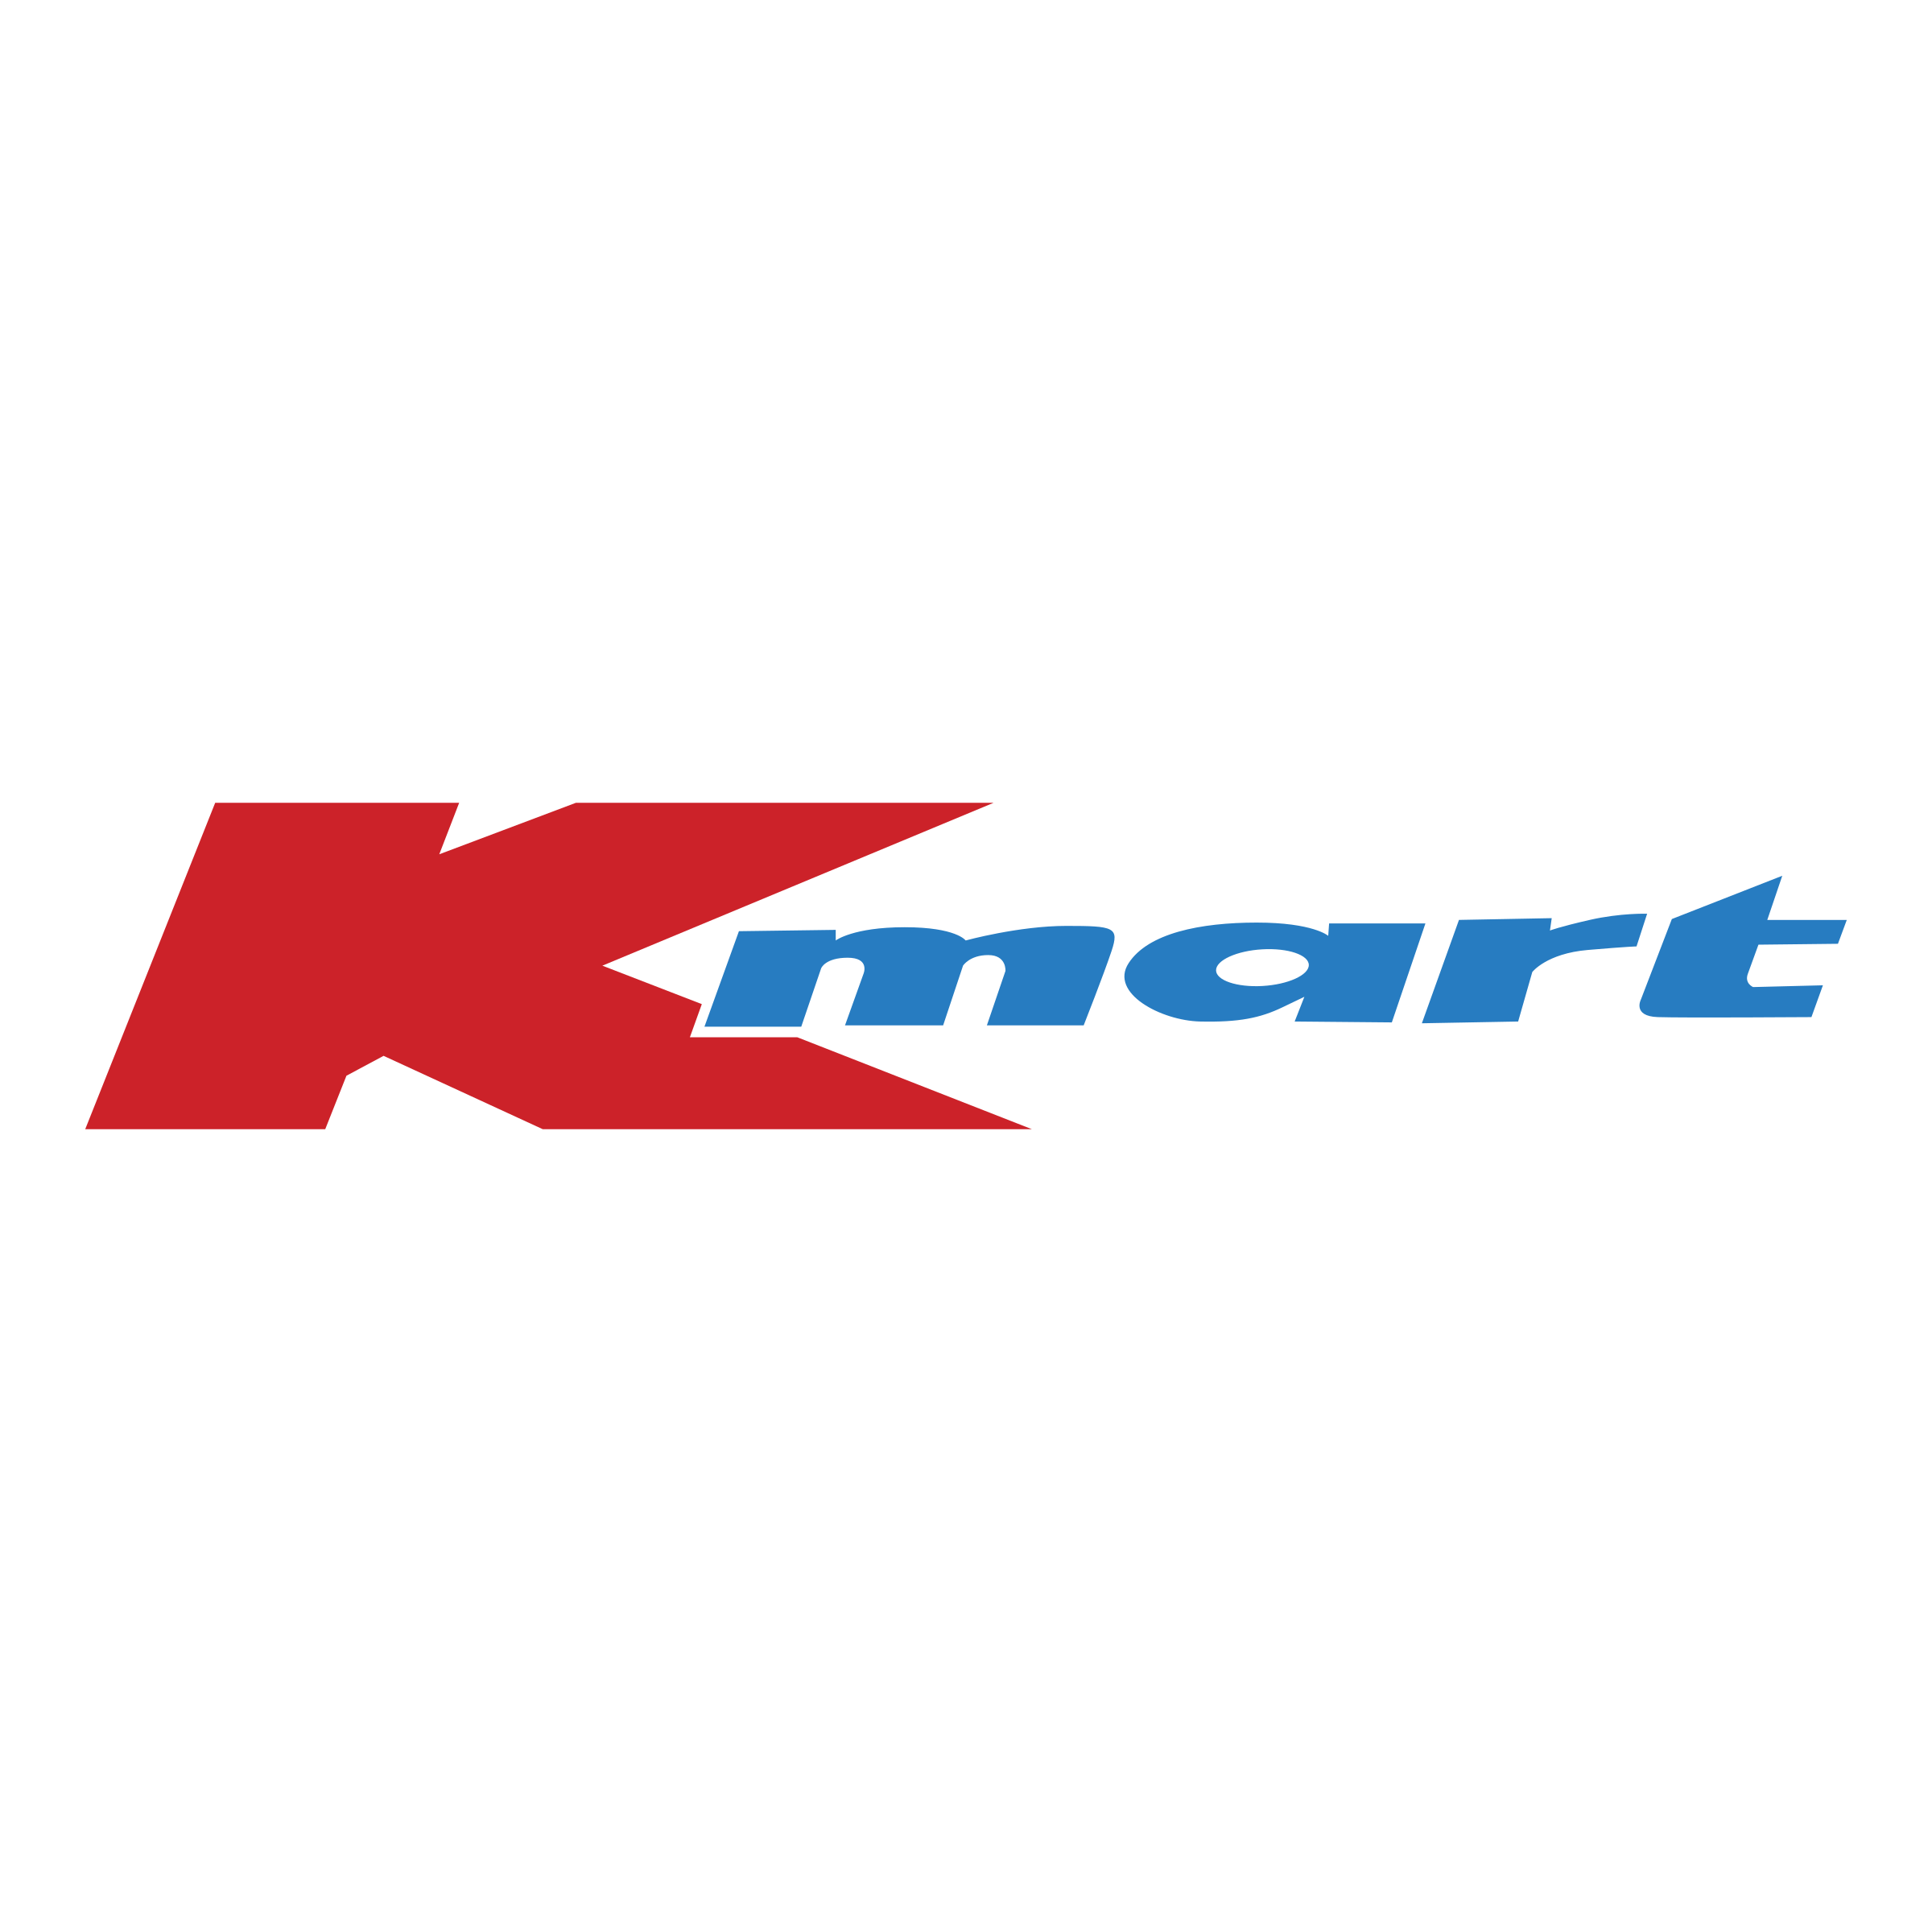 Kmart Logo PNG Transparent & SVG Vector.